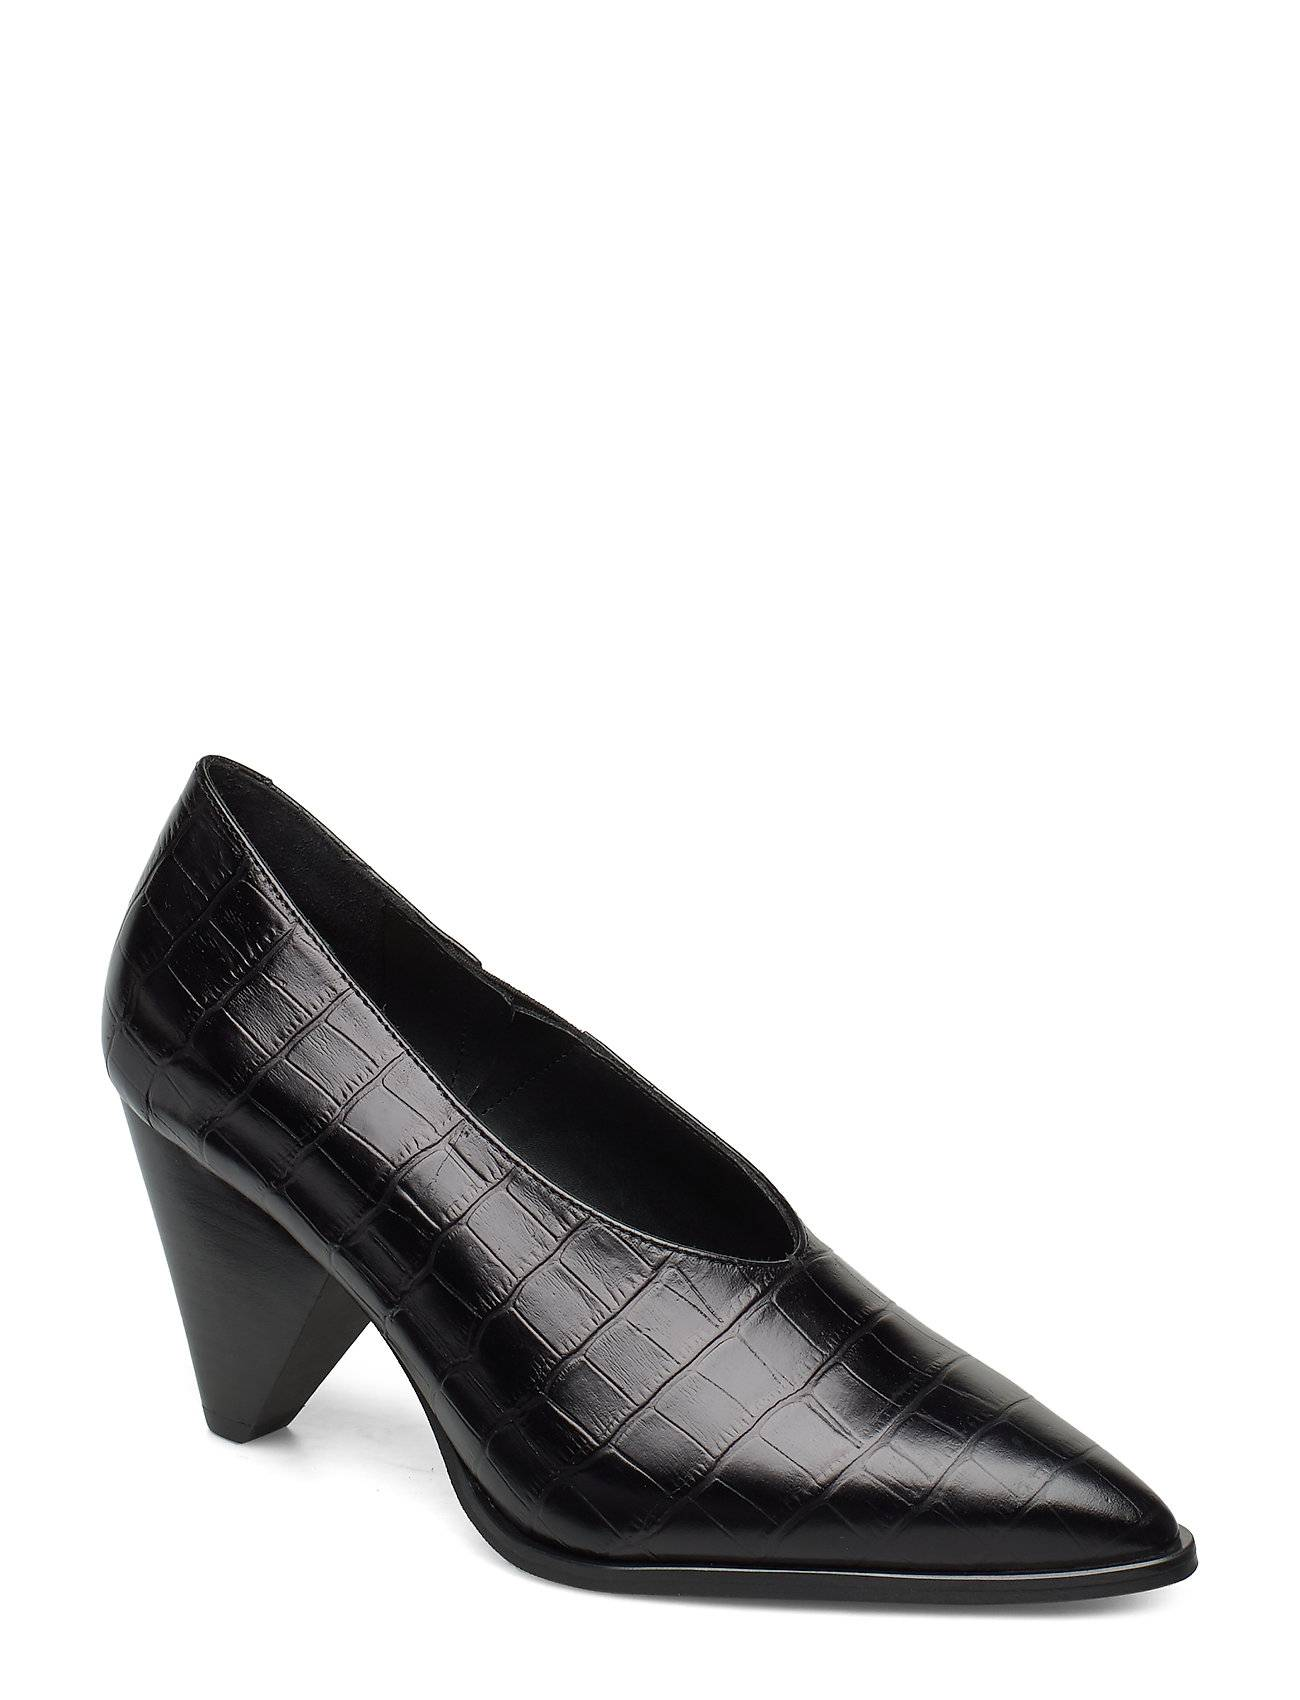 ANNY NORD Roach Killer Shoes Heels Pumps Classic Musta ANNY NORD